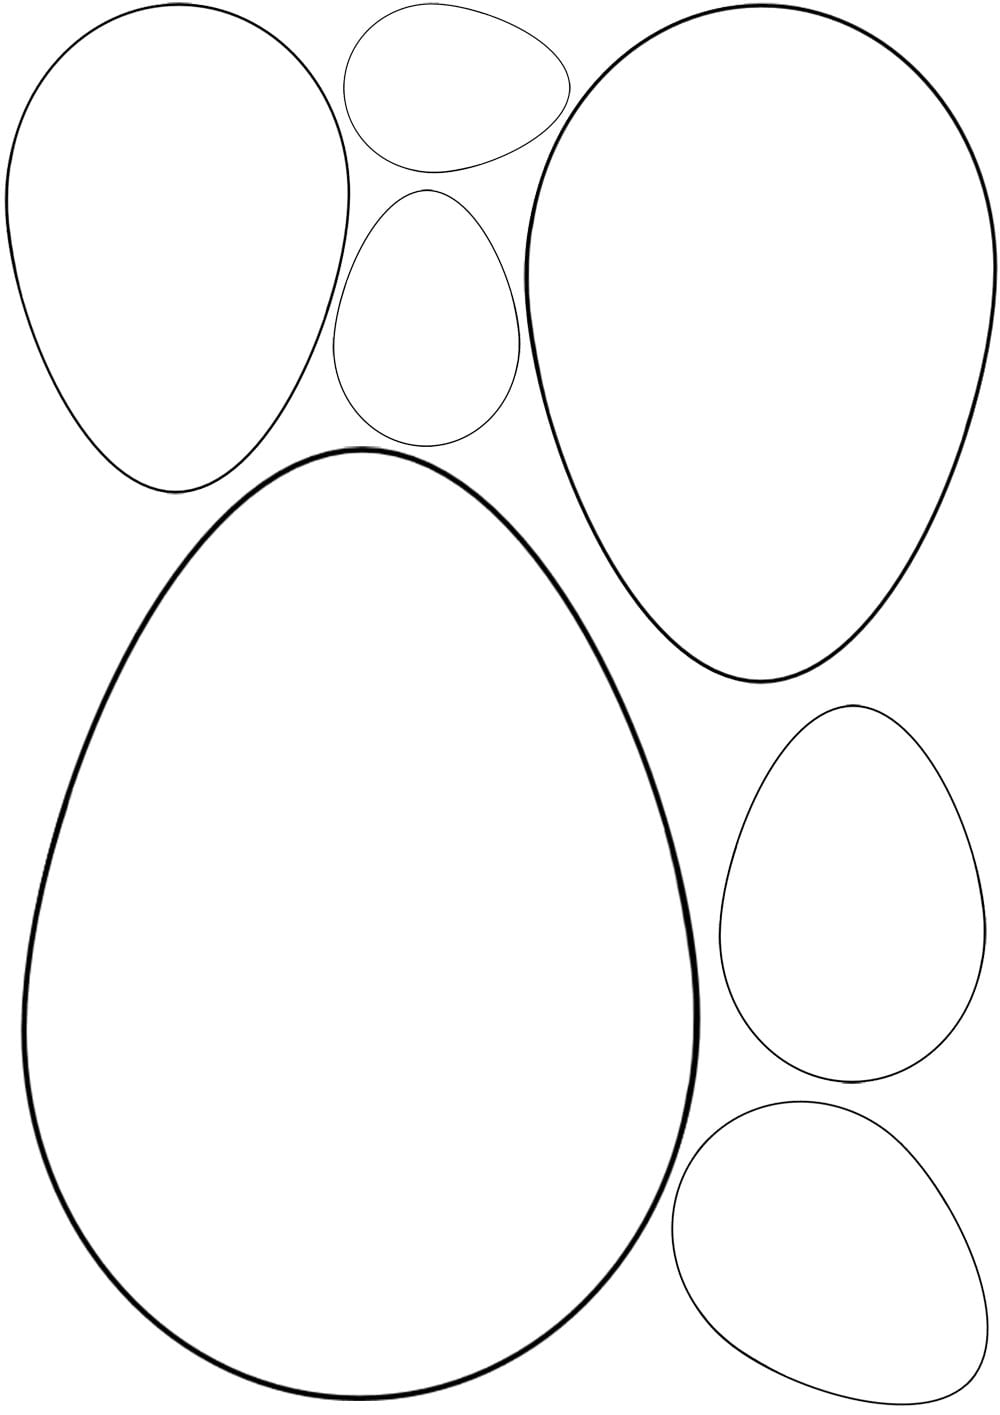 Egg Outline Drawing At Getdrawings Com